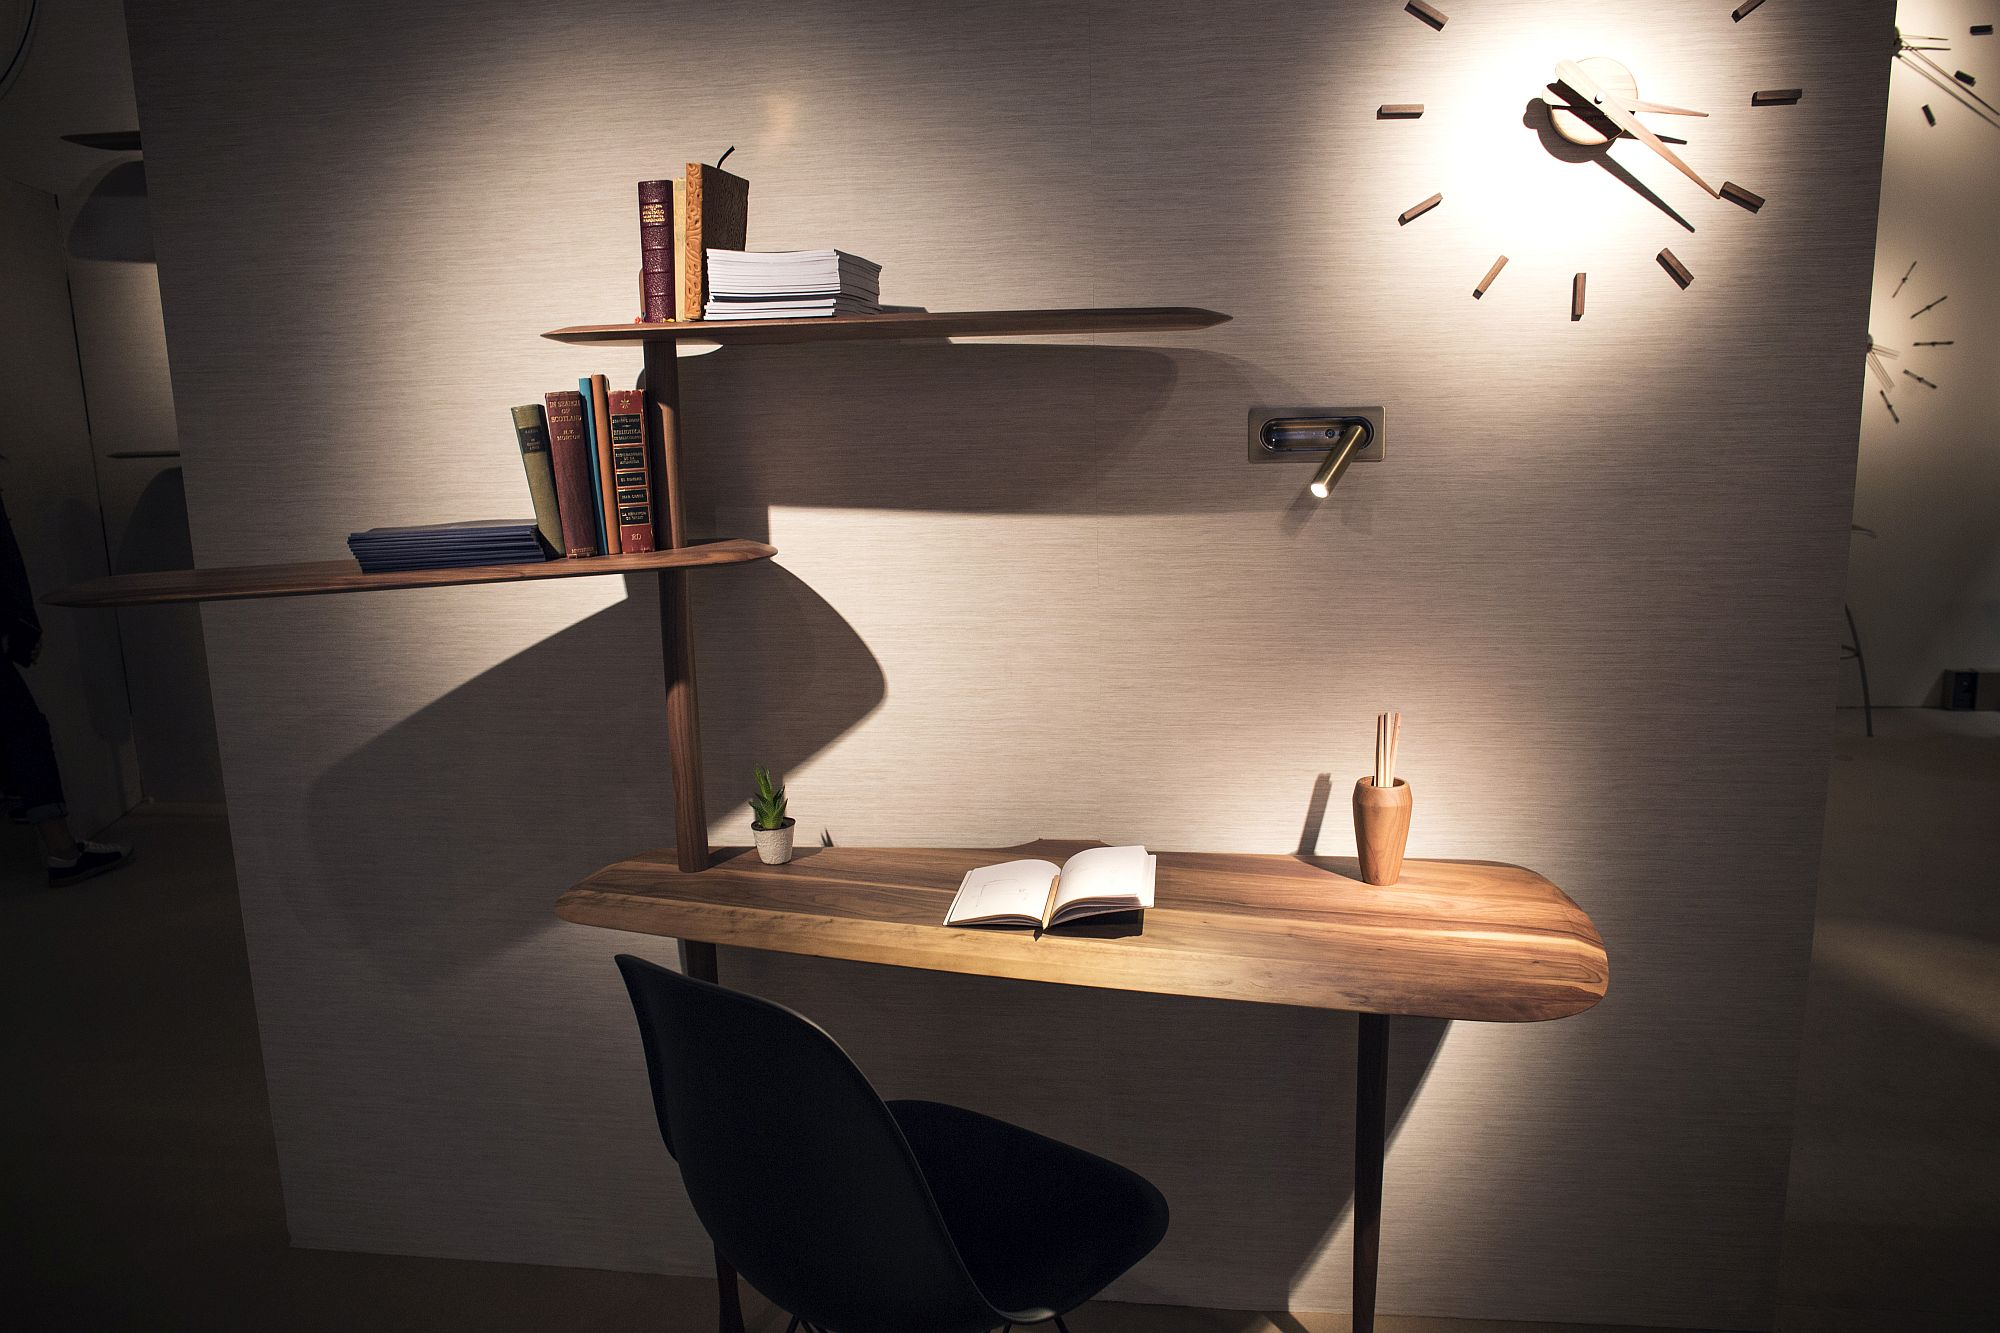 Creating-shelves-above-the-sleek-workdesk-beat-the-plain-old-shelves-any-day